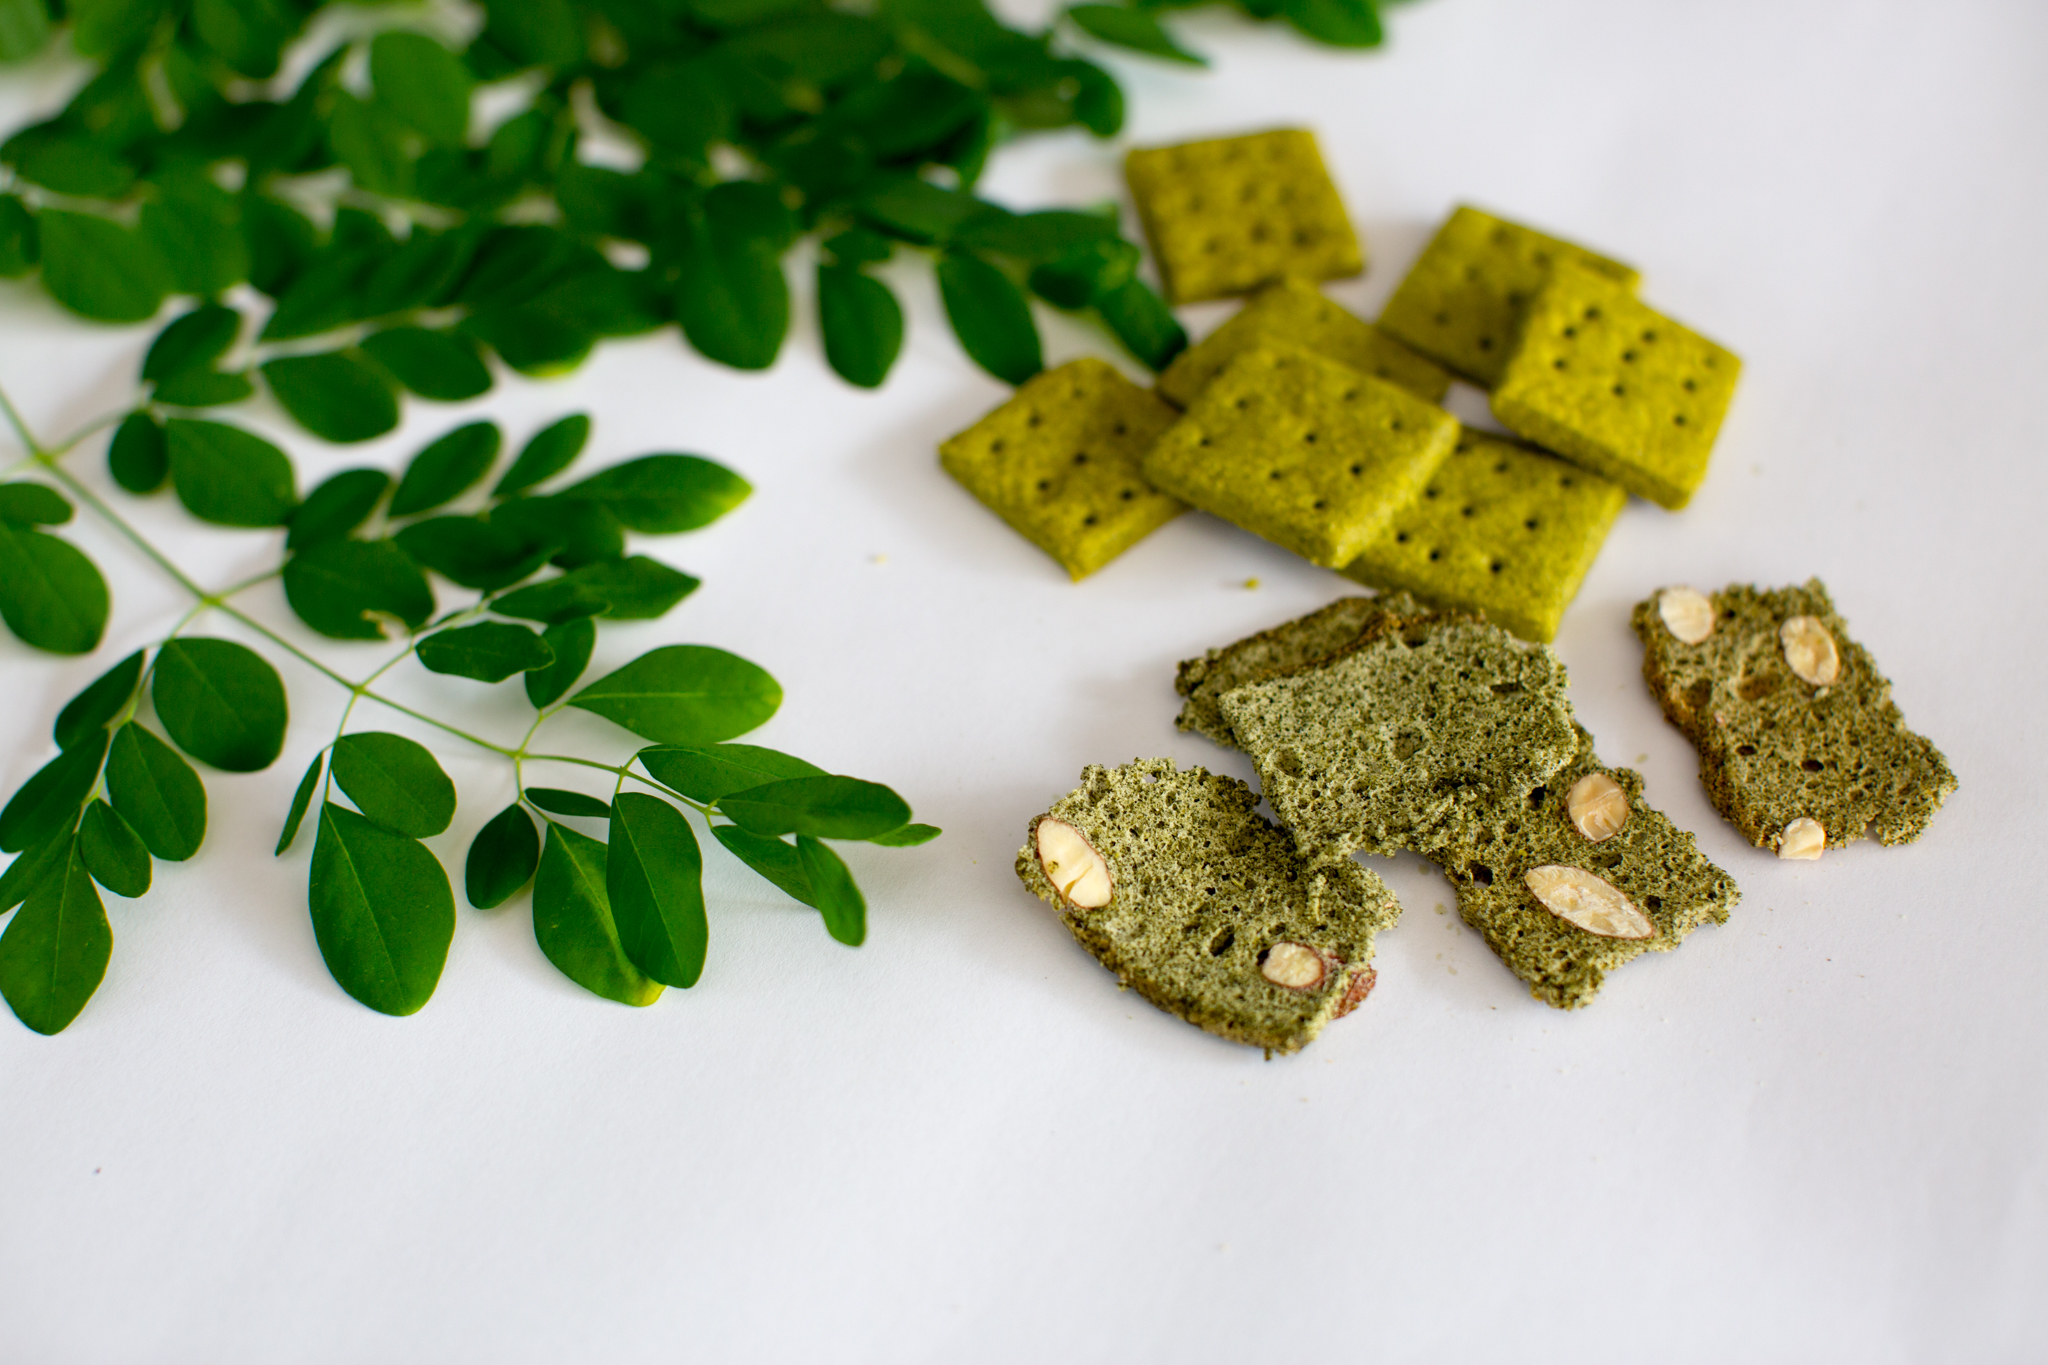 Leaves of a moringa plant and a selection of products made from the moringa